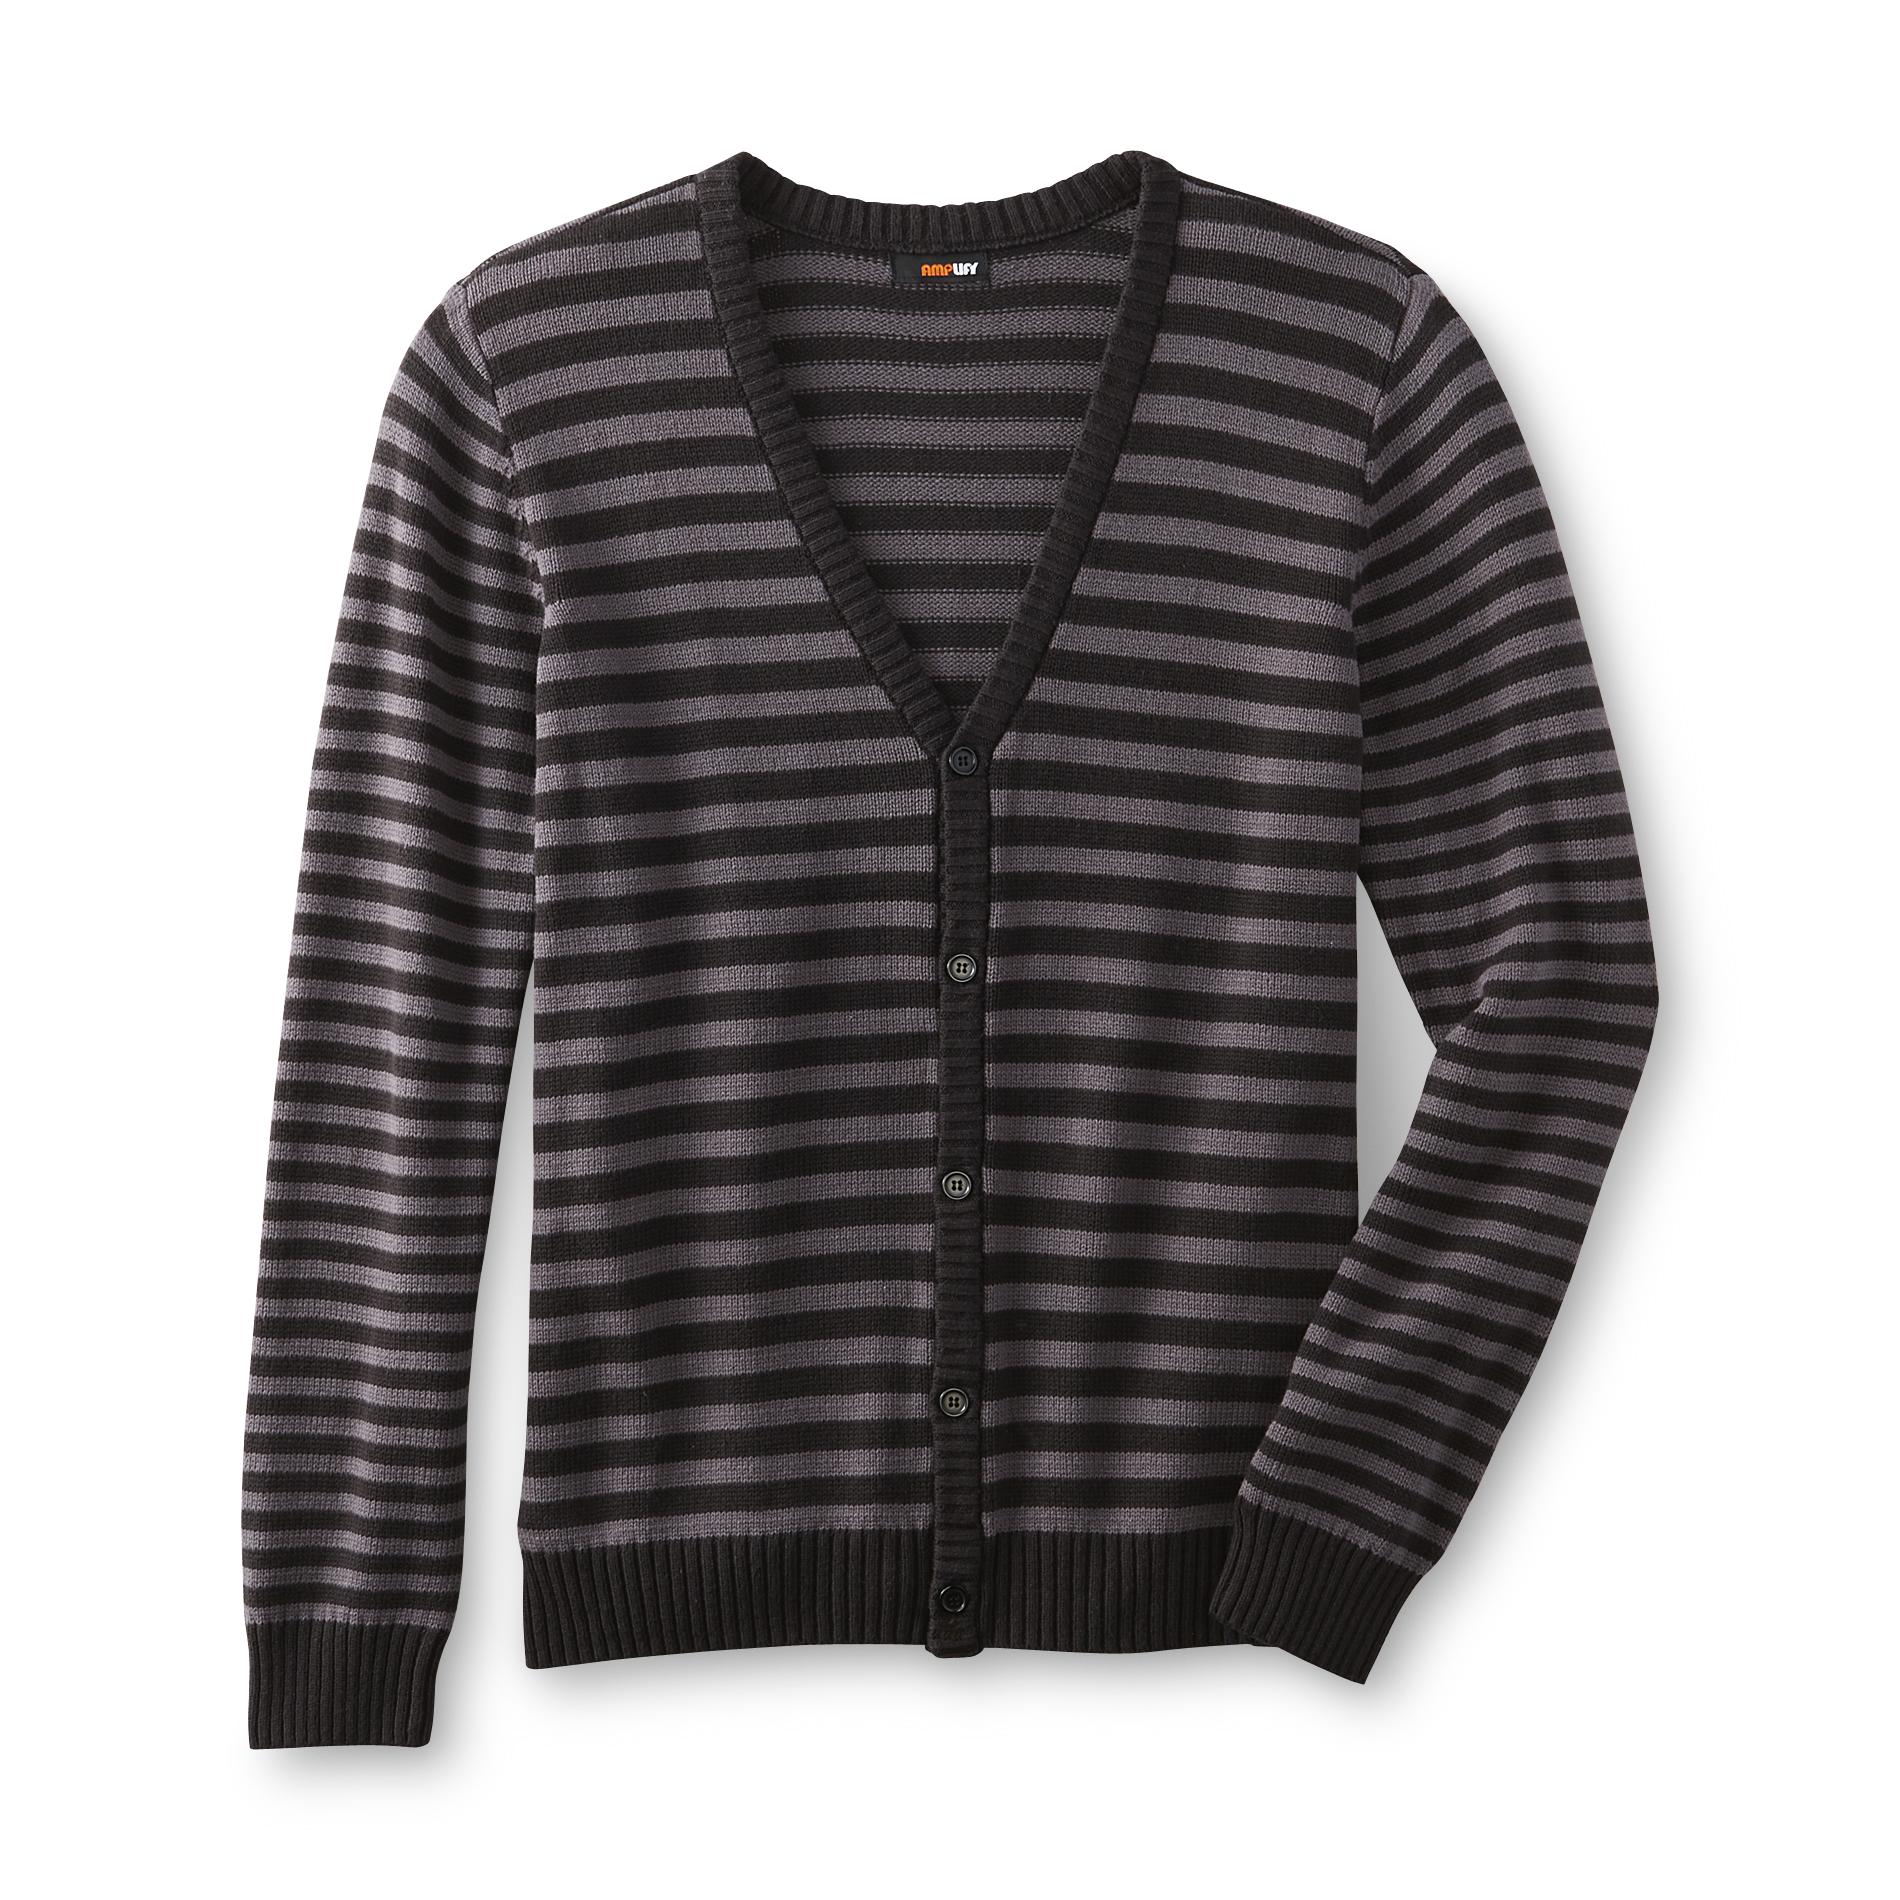 Amplify Young Men's Knit Cardigan - Striped